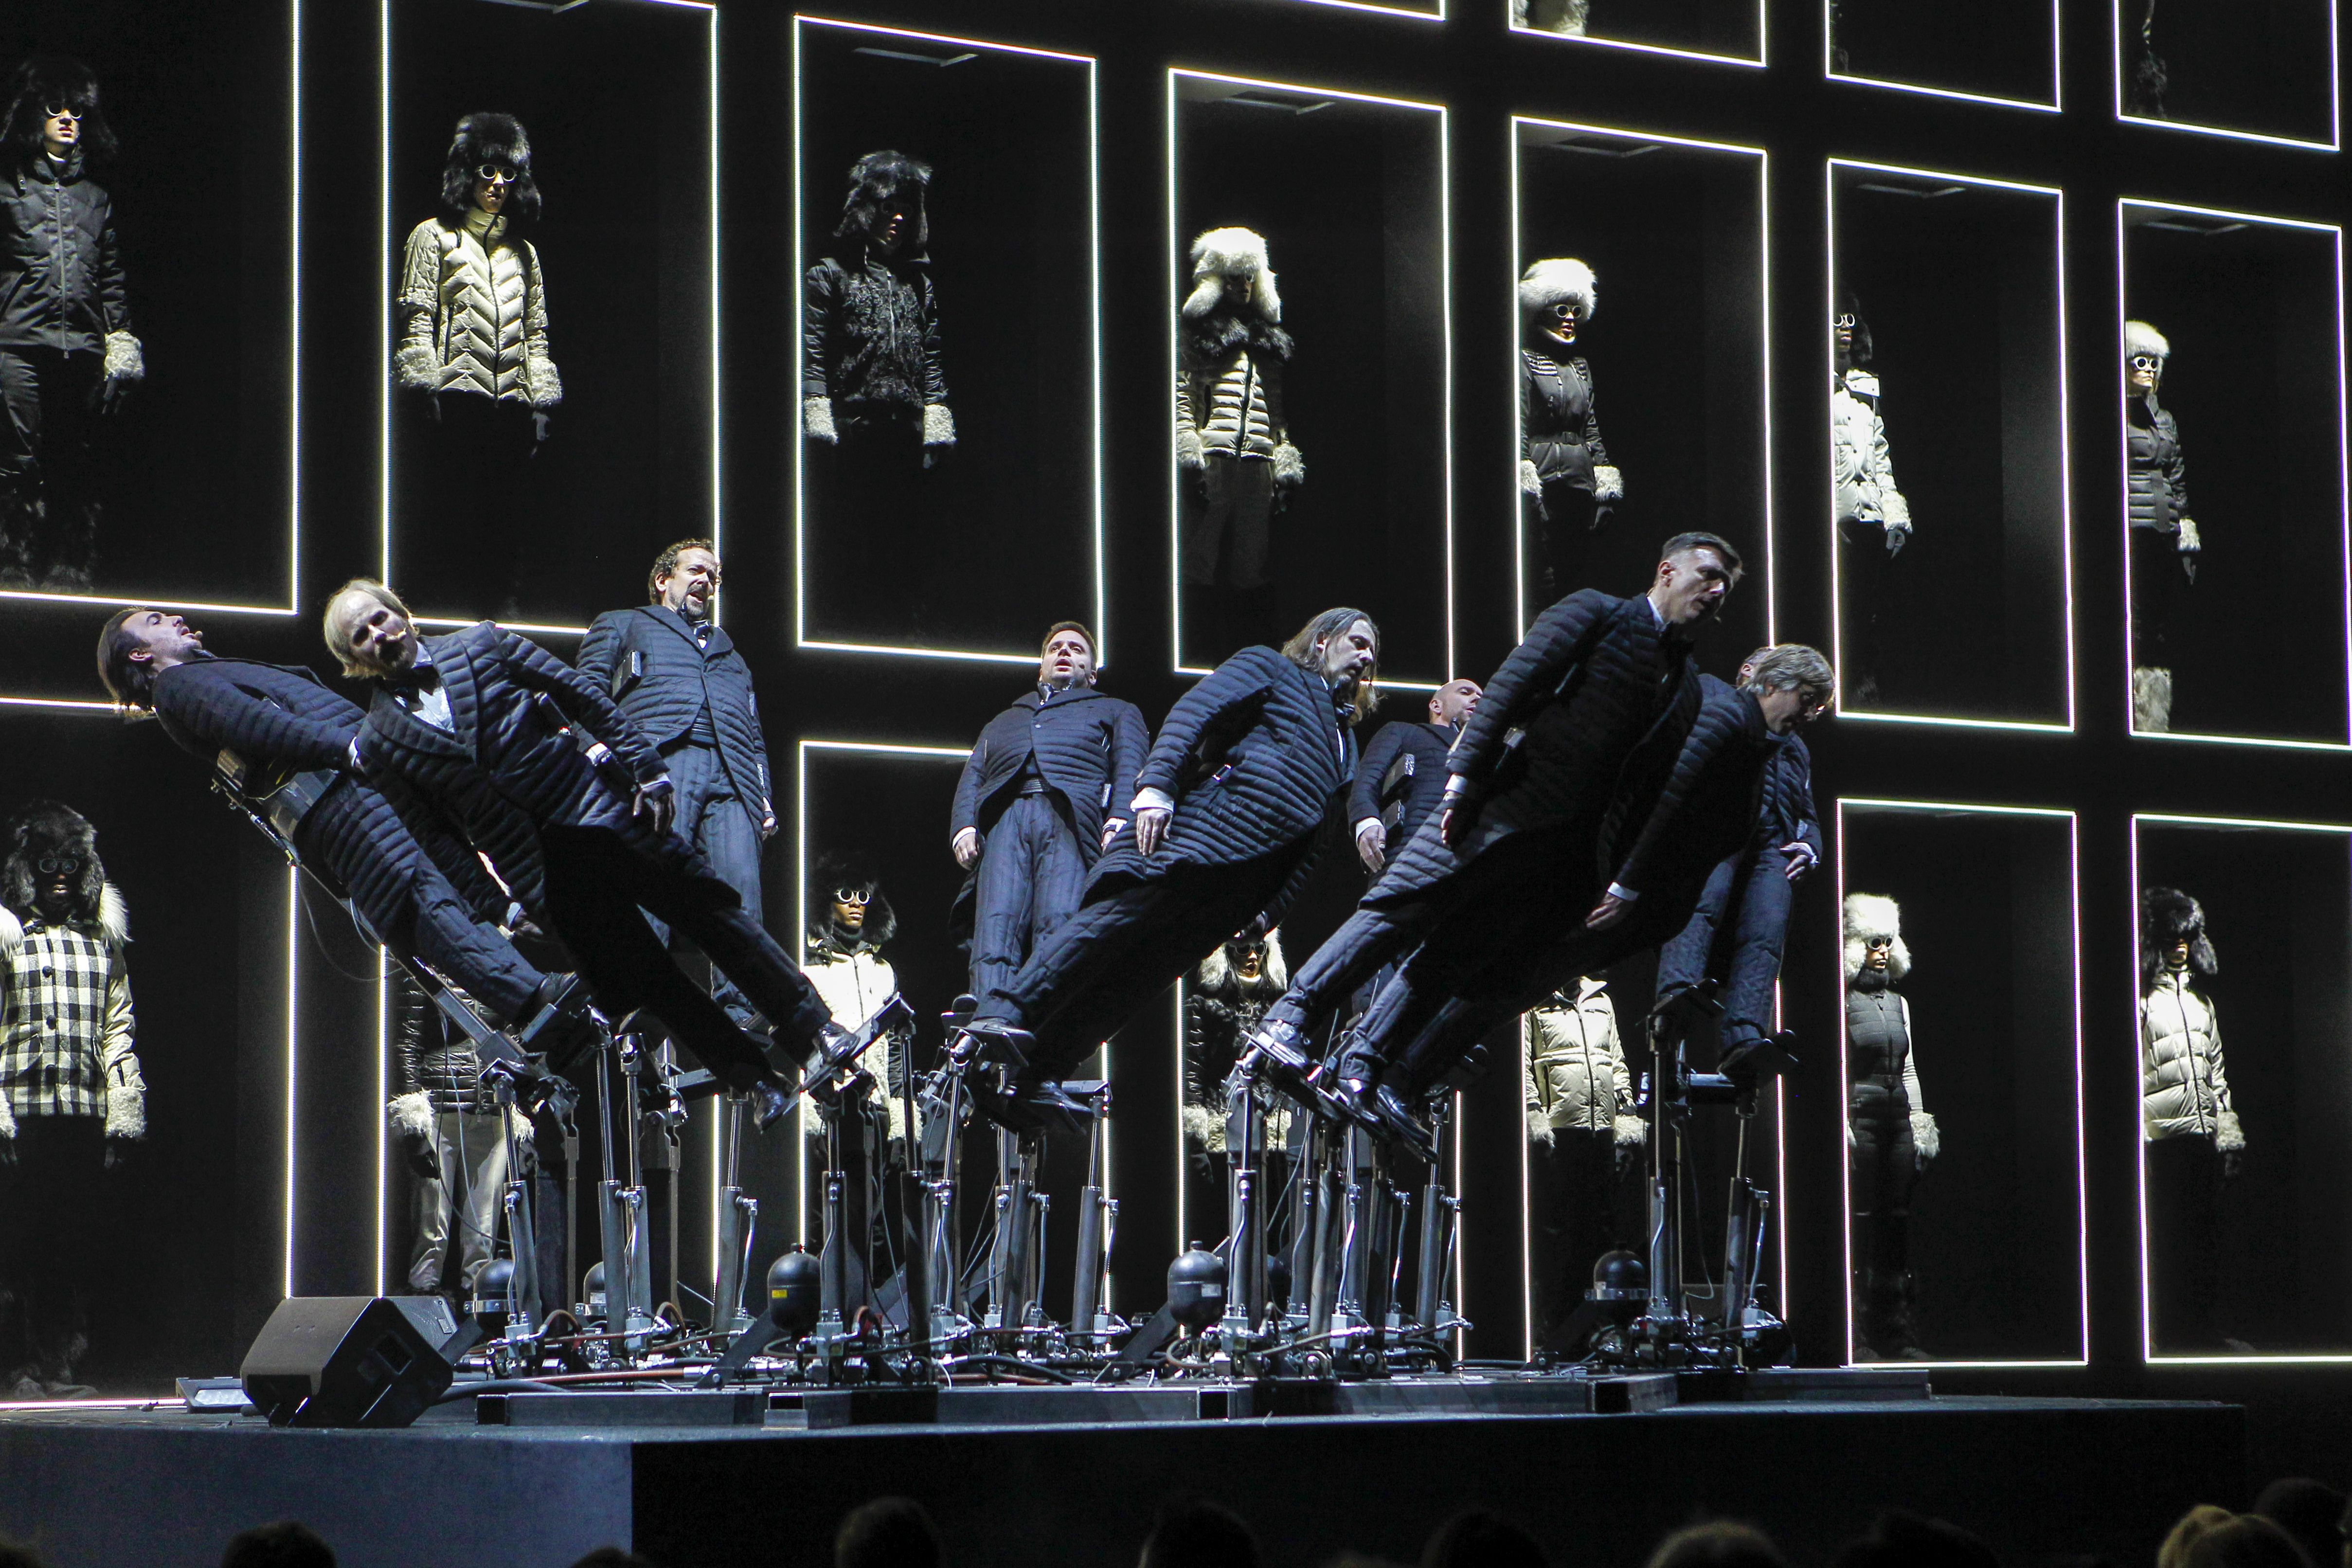 Moncler Grenoble transformed the New York's Hammerstein Ballroom into a unique audio-visual experience.